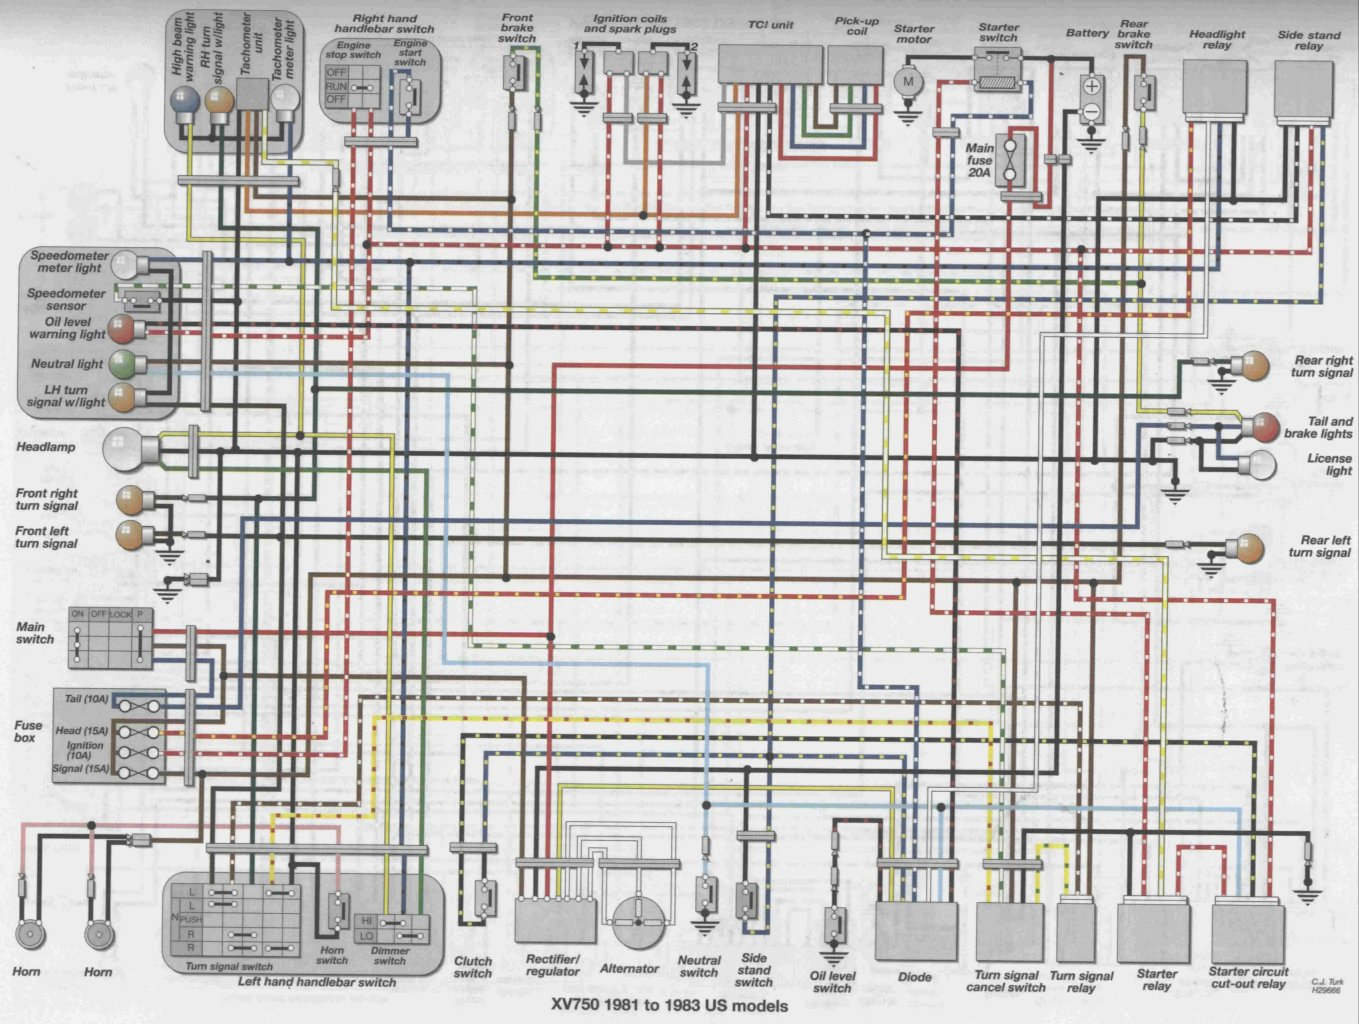 viragotechforum.com • view topic - 83 xv750 electrical ... marine wiring diagram yamaha f90 wiring diagram yamaha virago